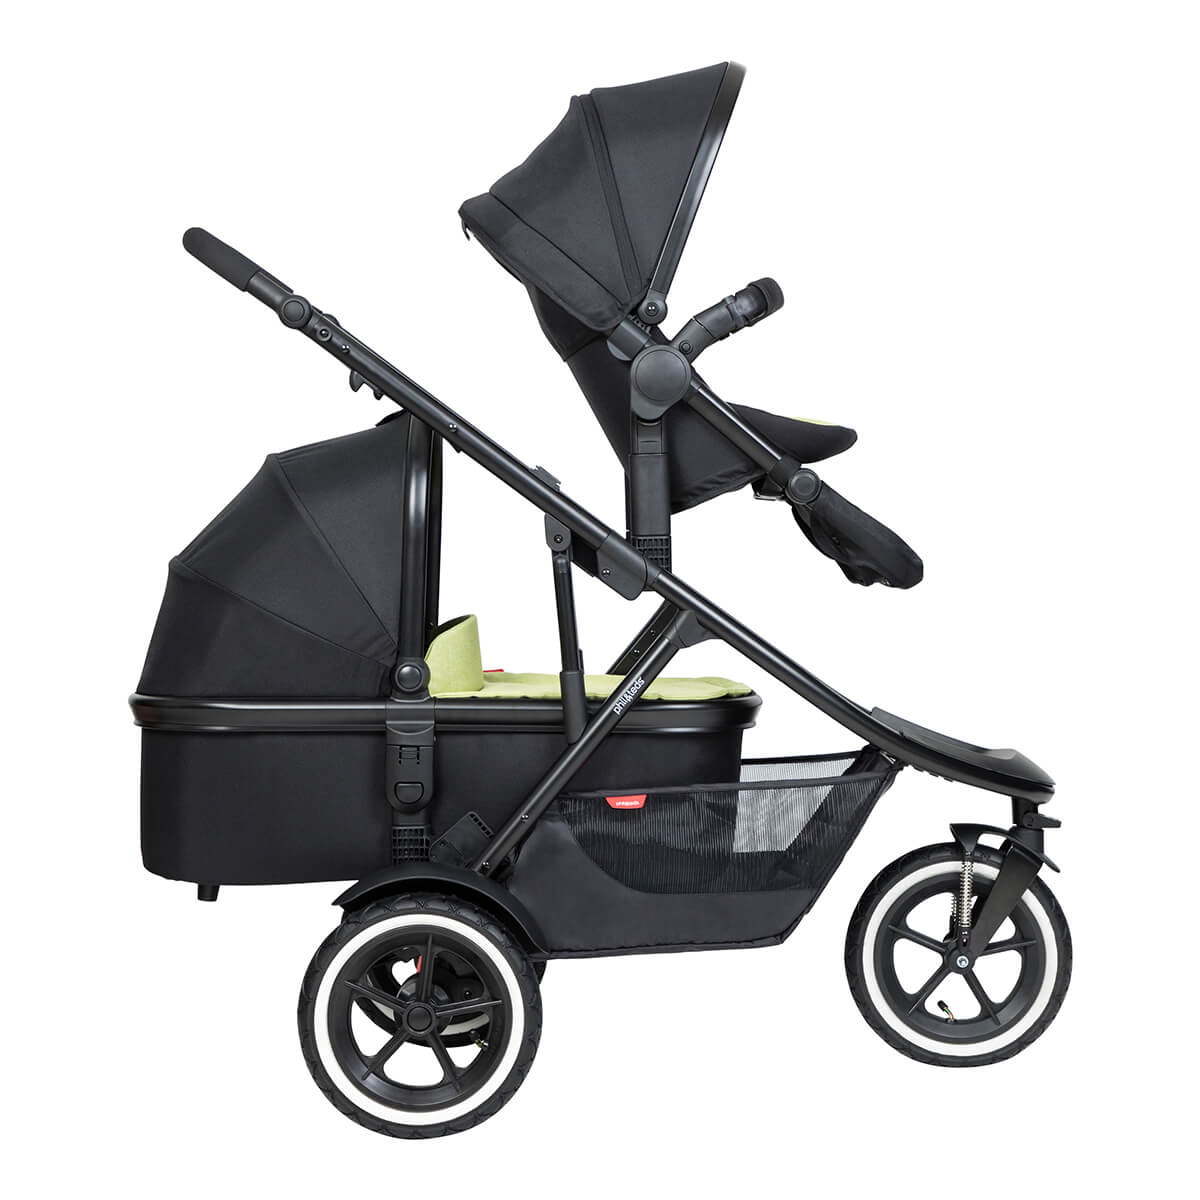 https://cdn.accentuate.io/4509528227928/19272668282968/philteds-sport-buggy-with-double-kit-extended-clip-and-snug-carrycot-side-view-v1626484452124.jpg?1200x1200